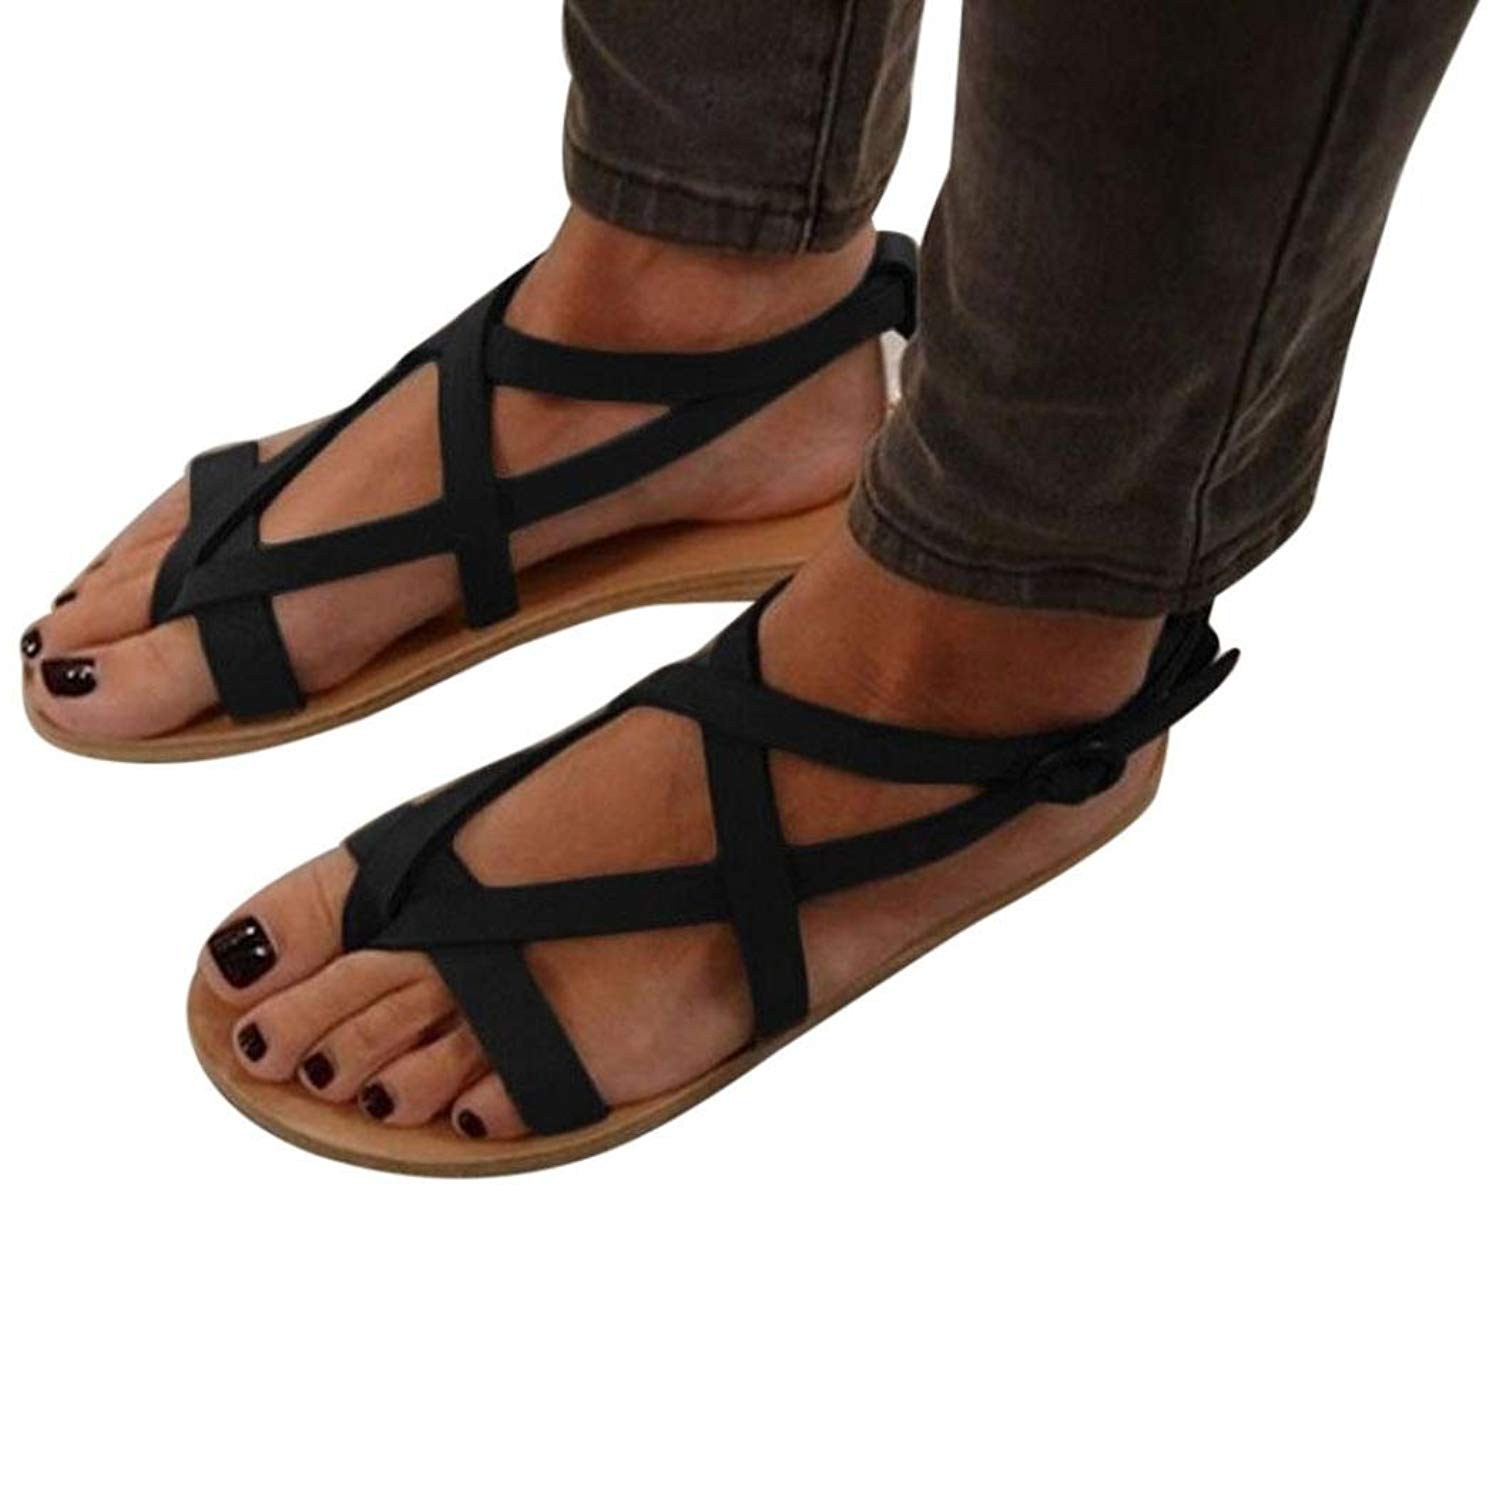 65360a49954 Buy Womens ladies flat double platform wedge lace up goth creepers ...